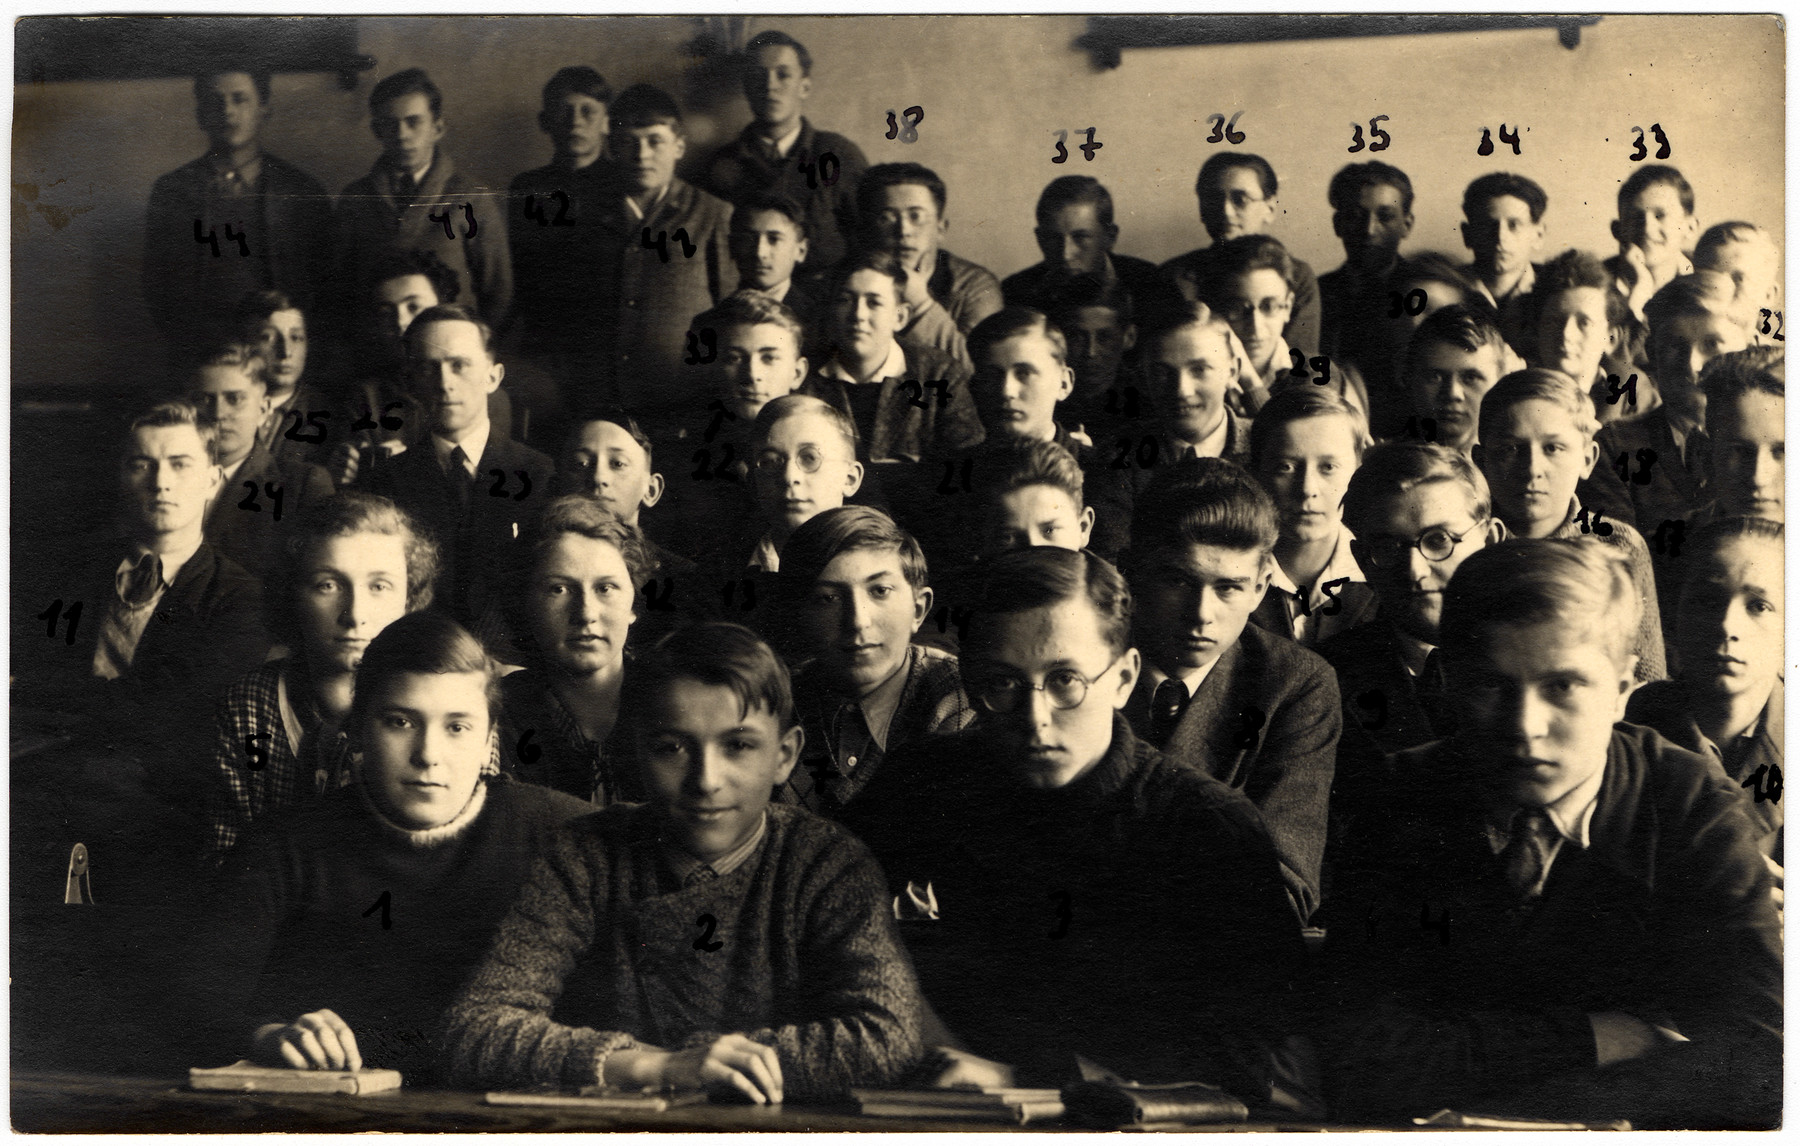 Group portrait of the students of the 4a class in the Gymnasium in Karlsbad.    Among those pictured is Egon Weiss.